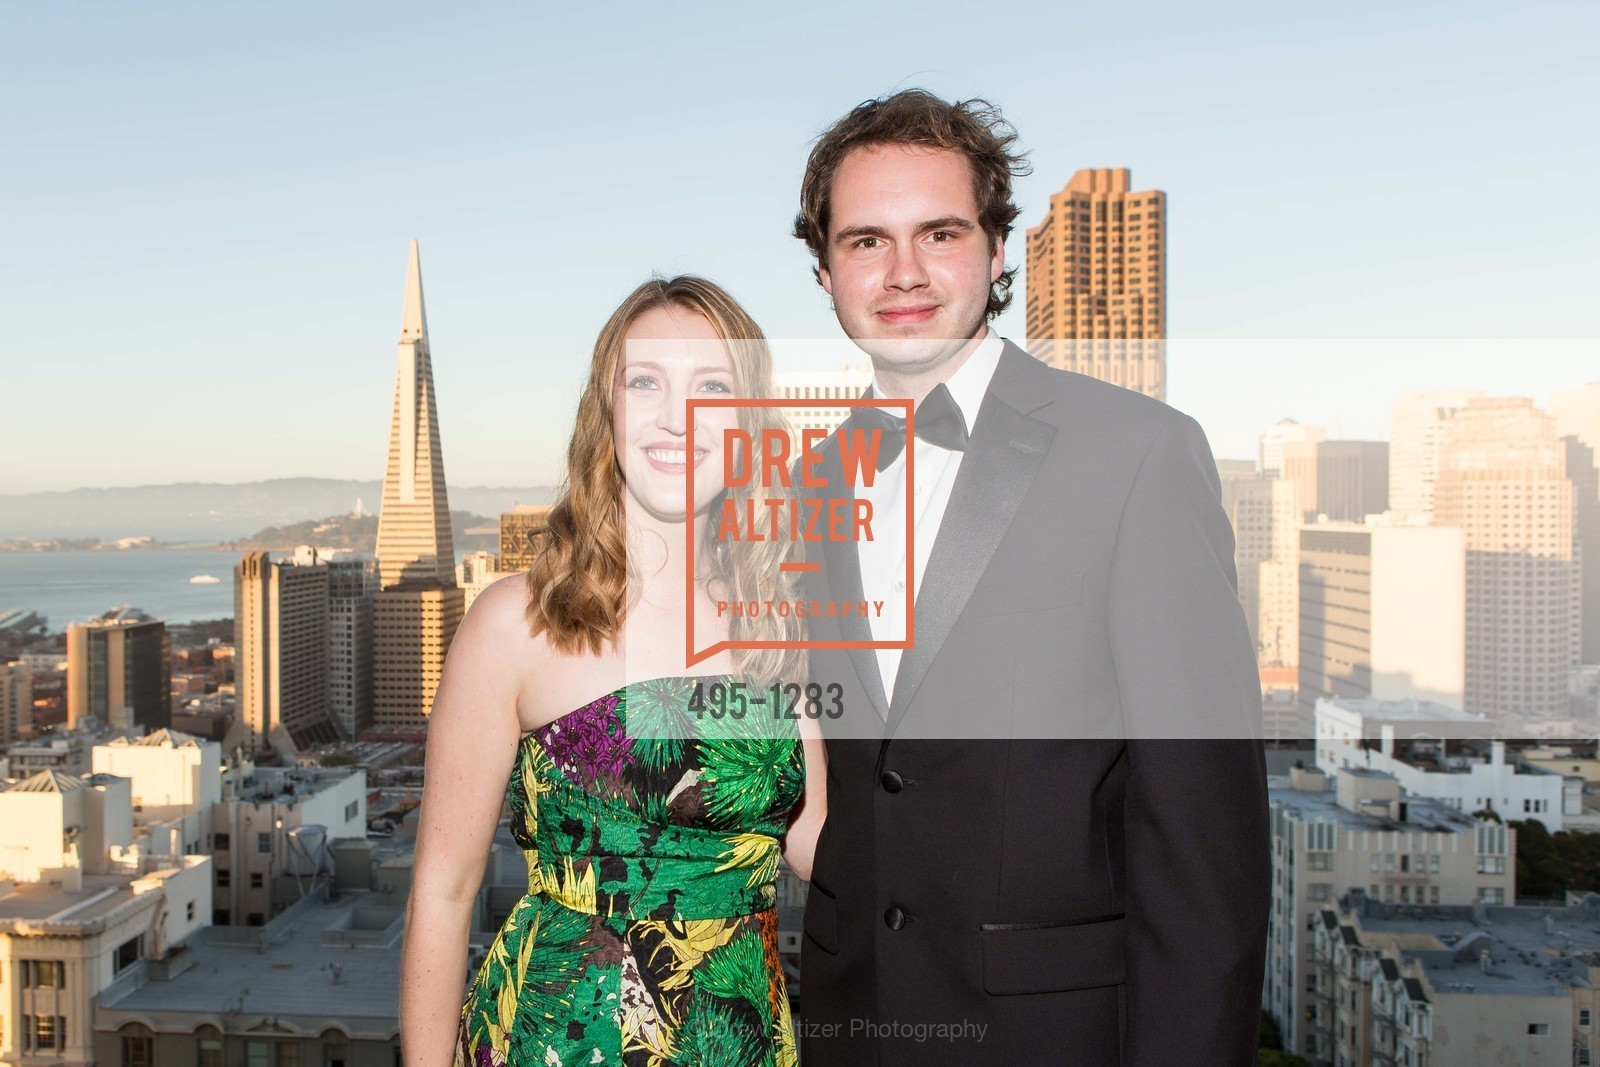 Julia Allyn, Addam Fishel, Spinsters of San Francisco Annual Ball 2016, US, June 25th, 2016